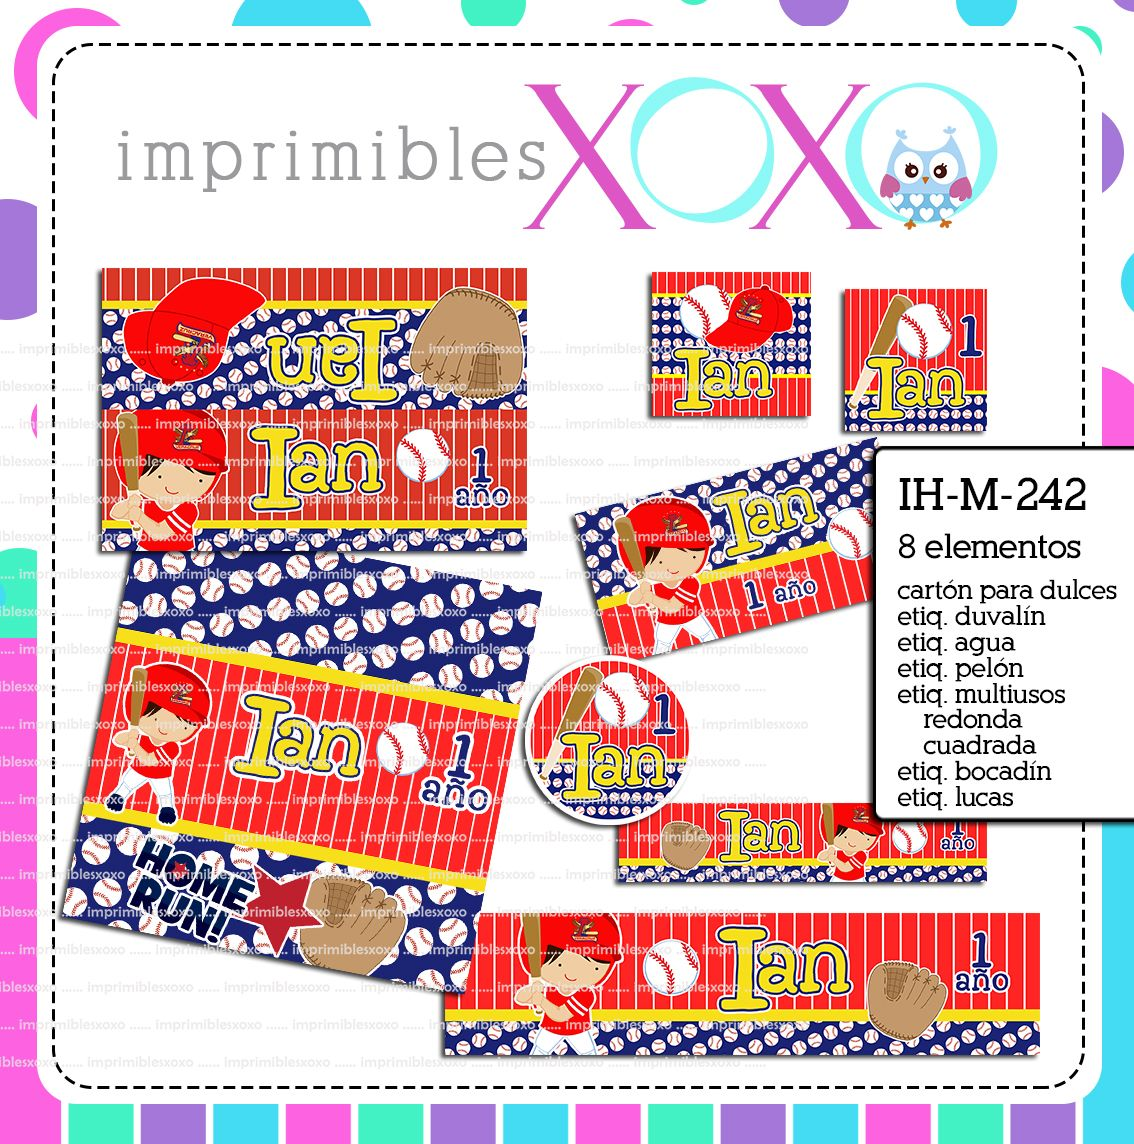 Pin by Imprimibles xoxo on DEPORTES - KIT PARA FIESTA INFANTIL ...